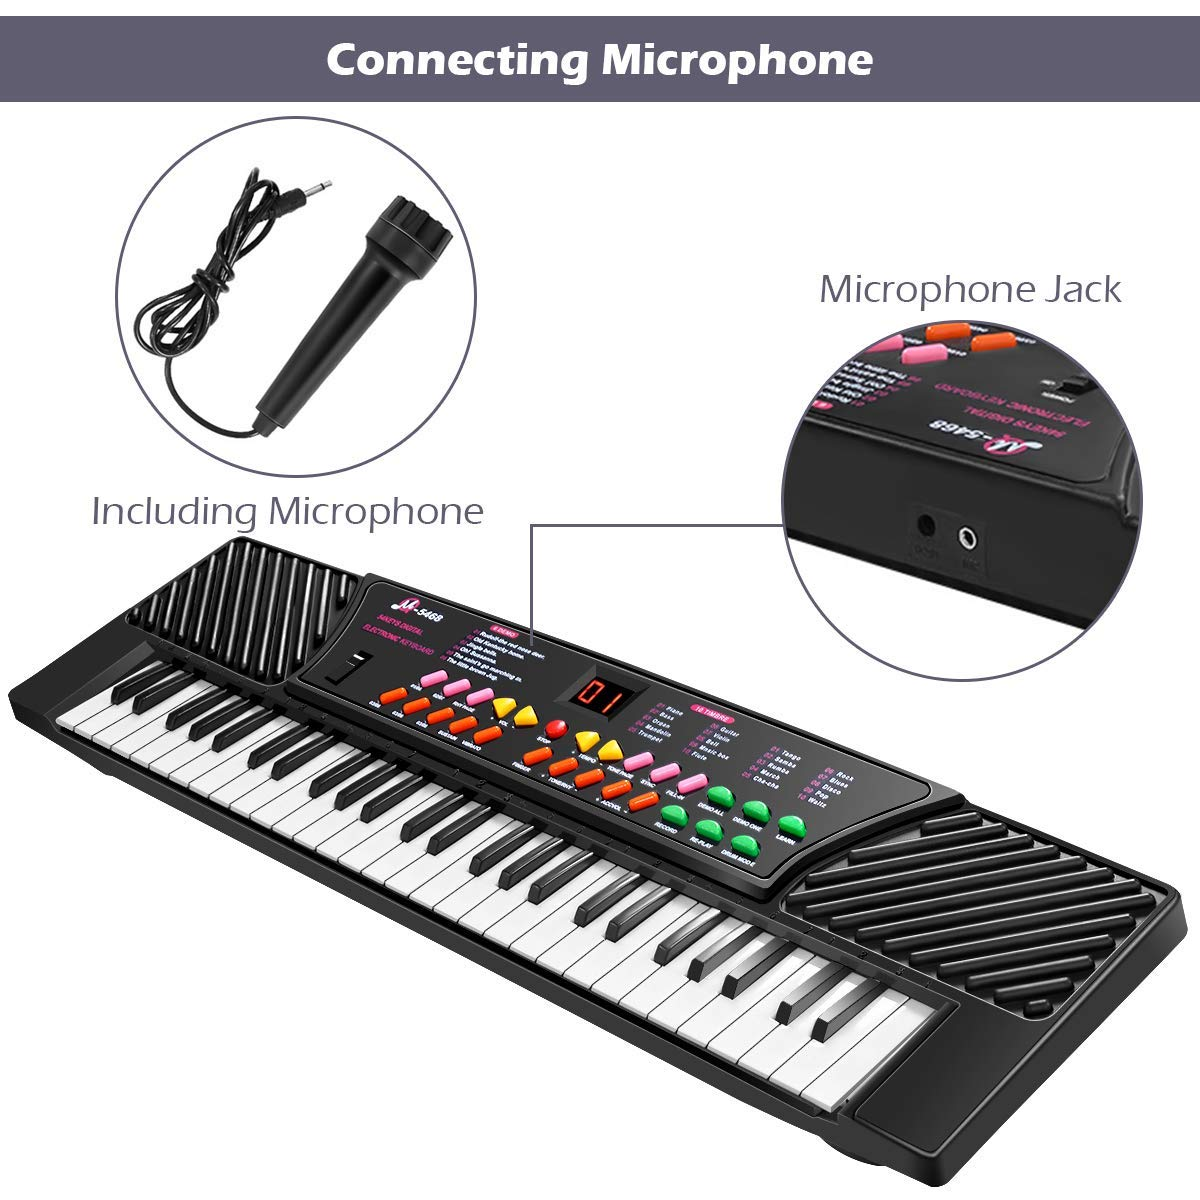 Tangkula 54-Key Electronic Keyboard for Kids Beginners with Mic & Adapter Including LED Digital Display, Learning Function & Demo Songs Standard Accordion Keys Piano Keyboard (Black) by TANGKULA (Image #7)